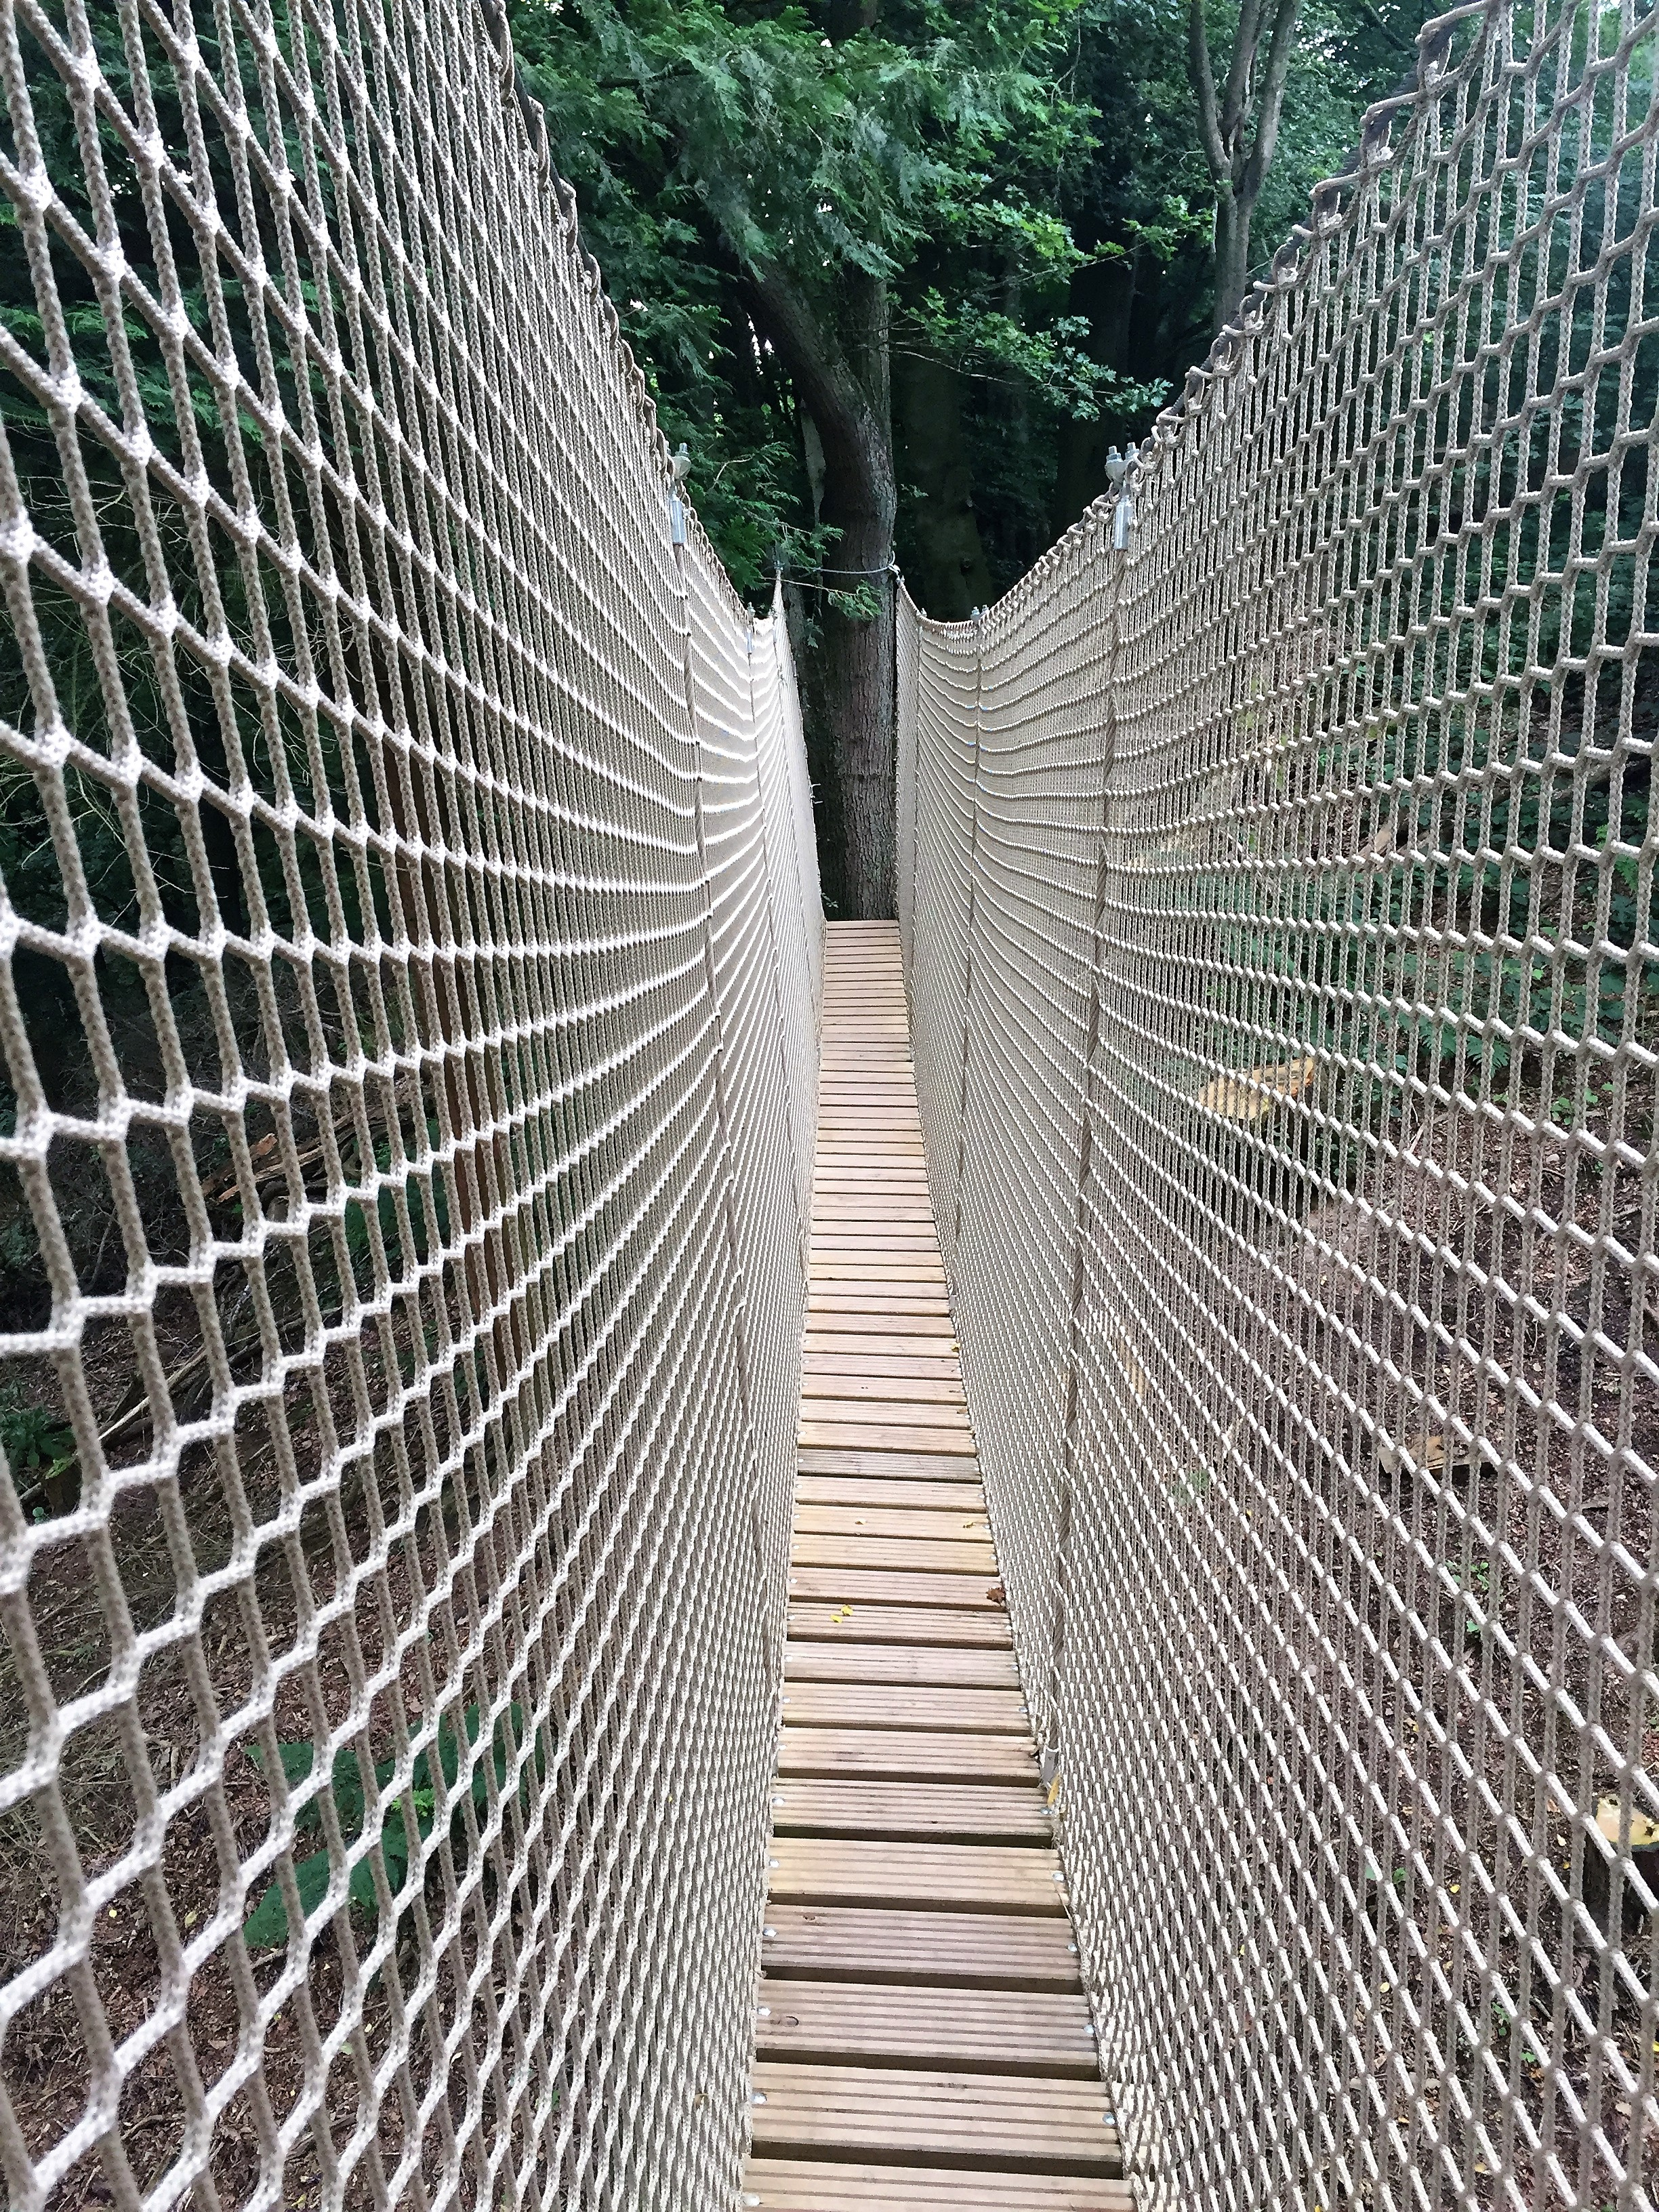 tree-safety-survey-ensures-canopy-walkway-is-safe